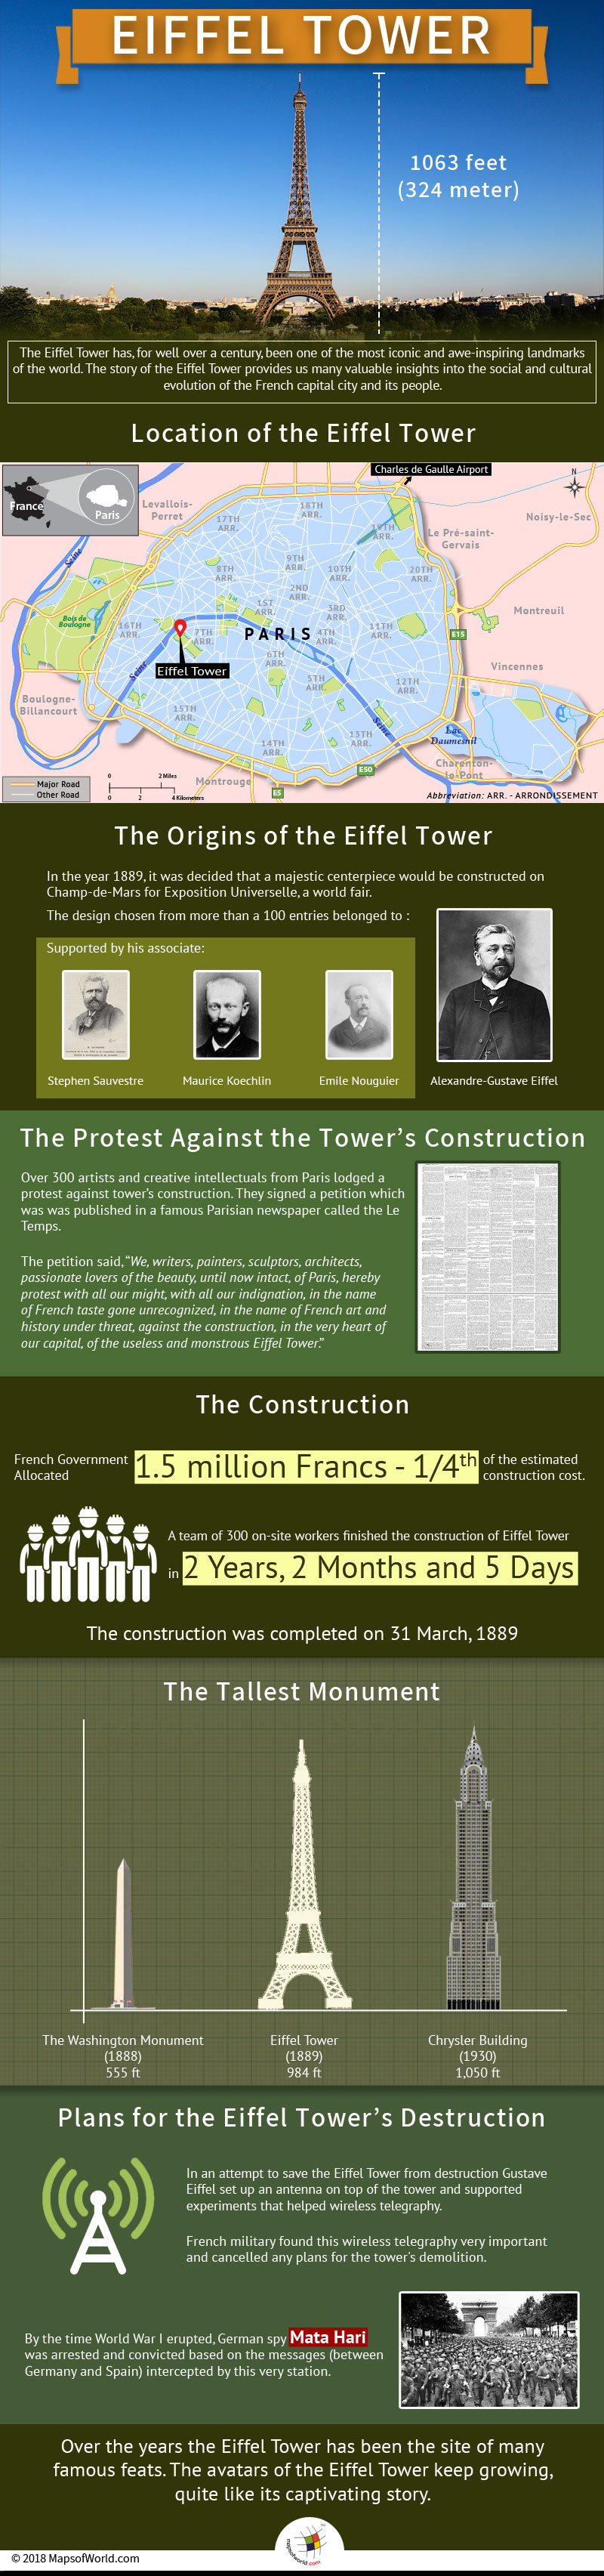 Infographic elaborating the story of the Eiffel Tower